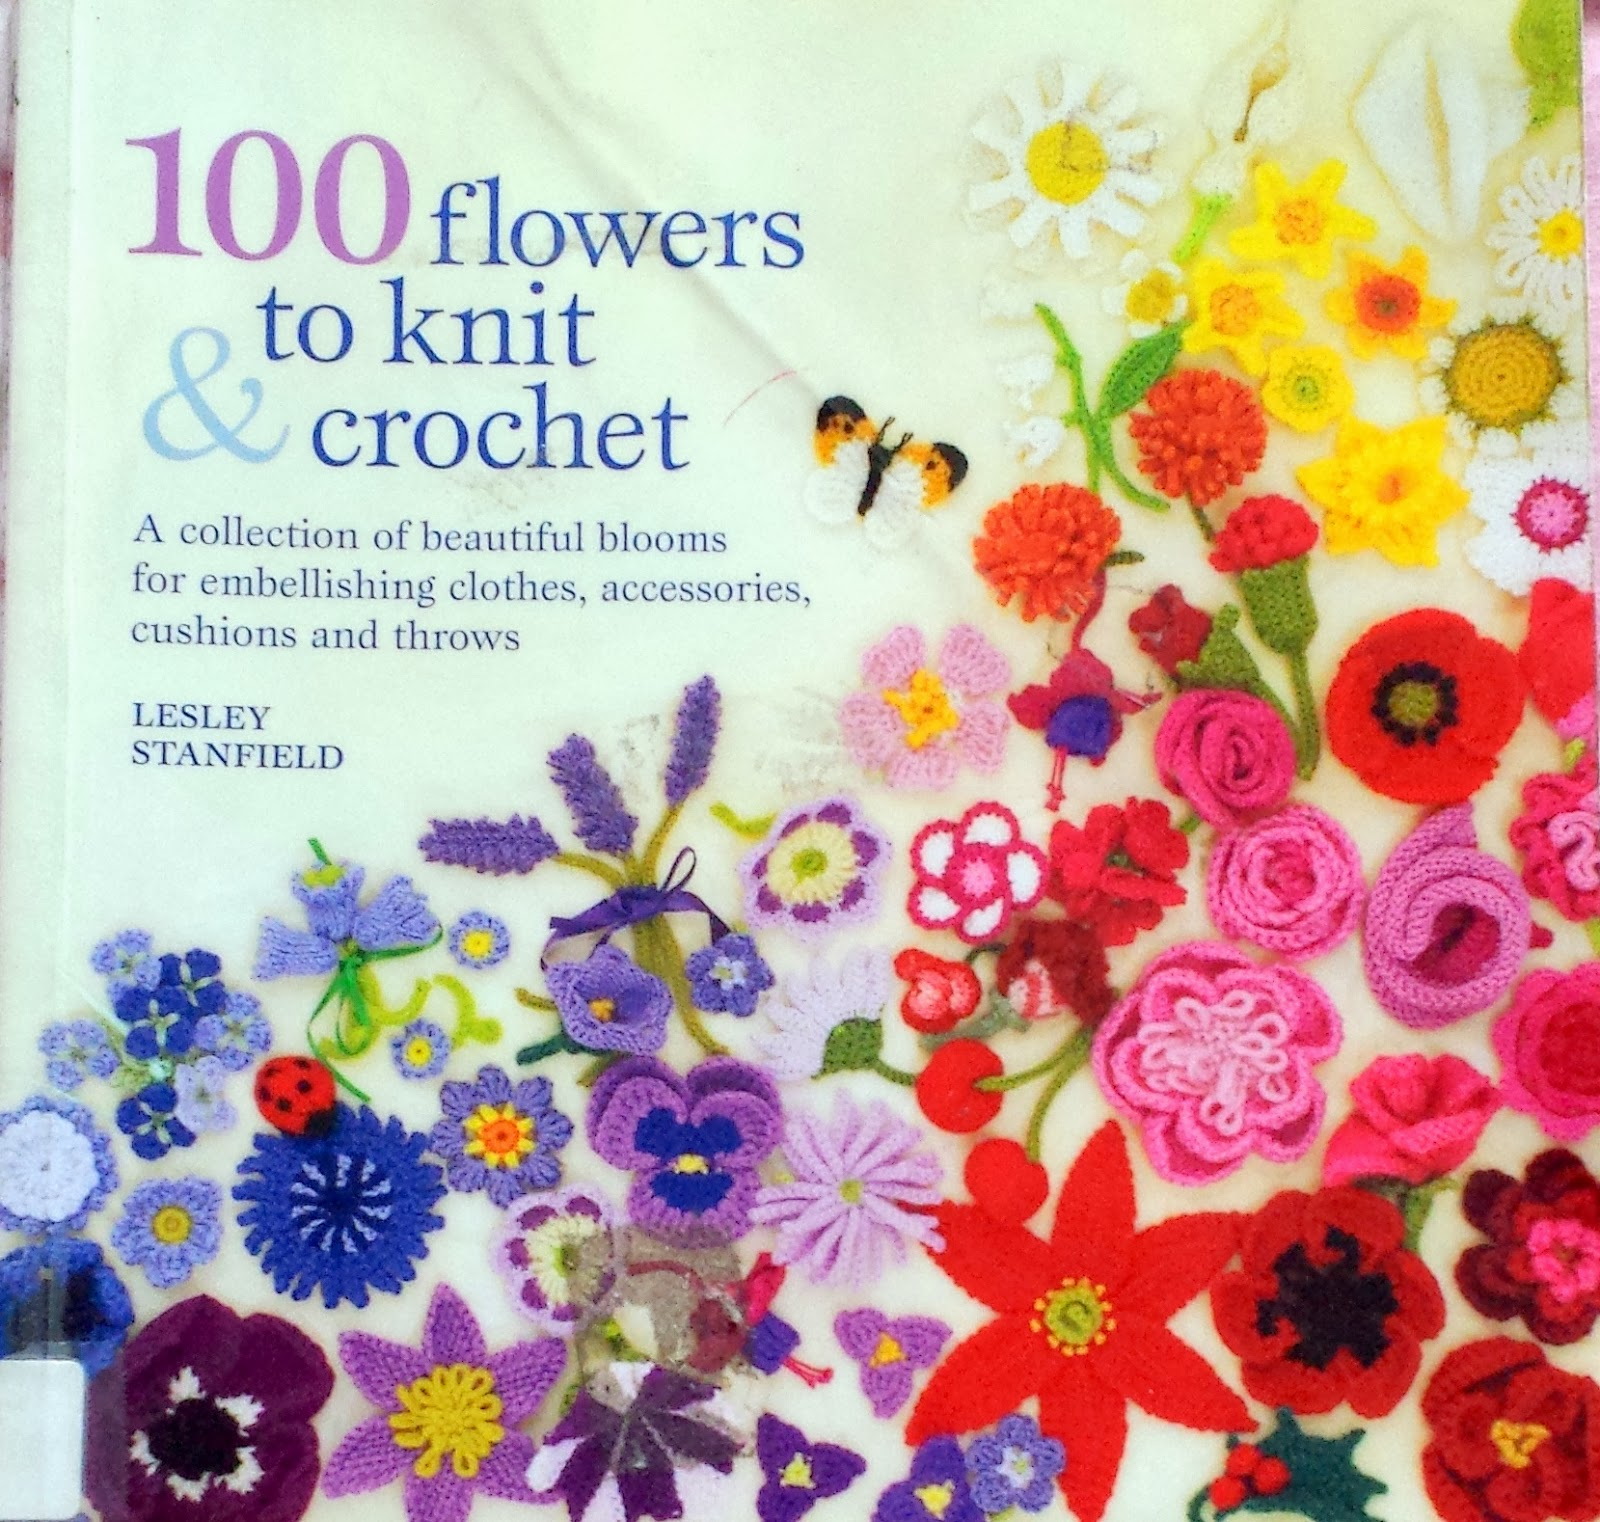 Knitting And Crochet Books From The Library